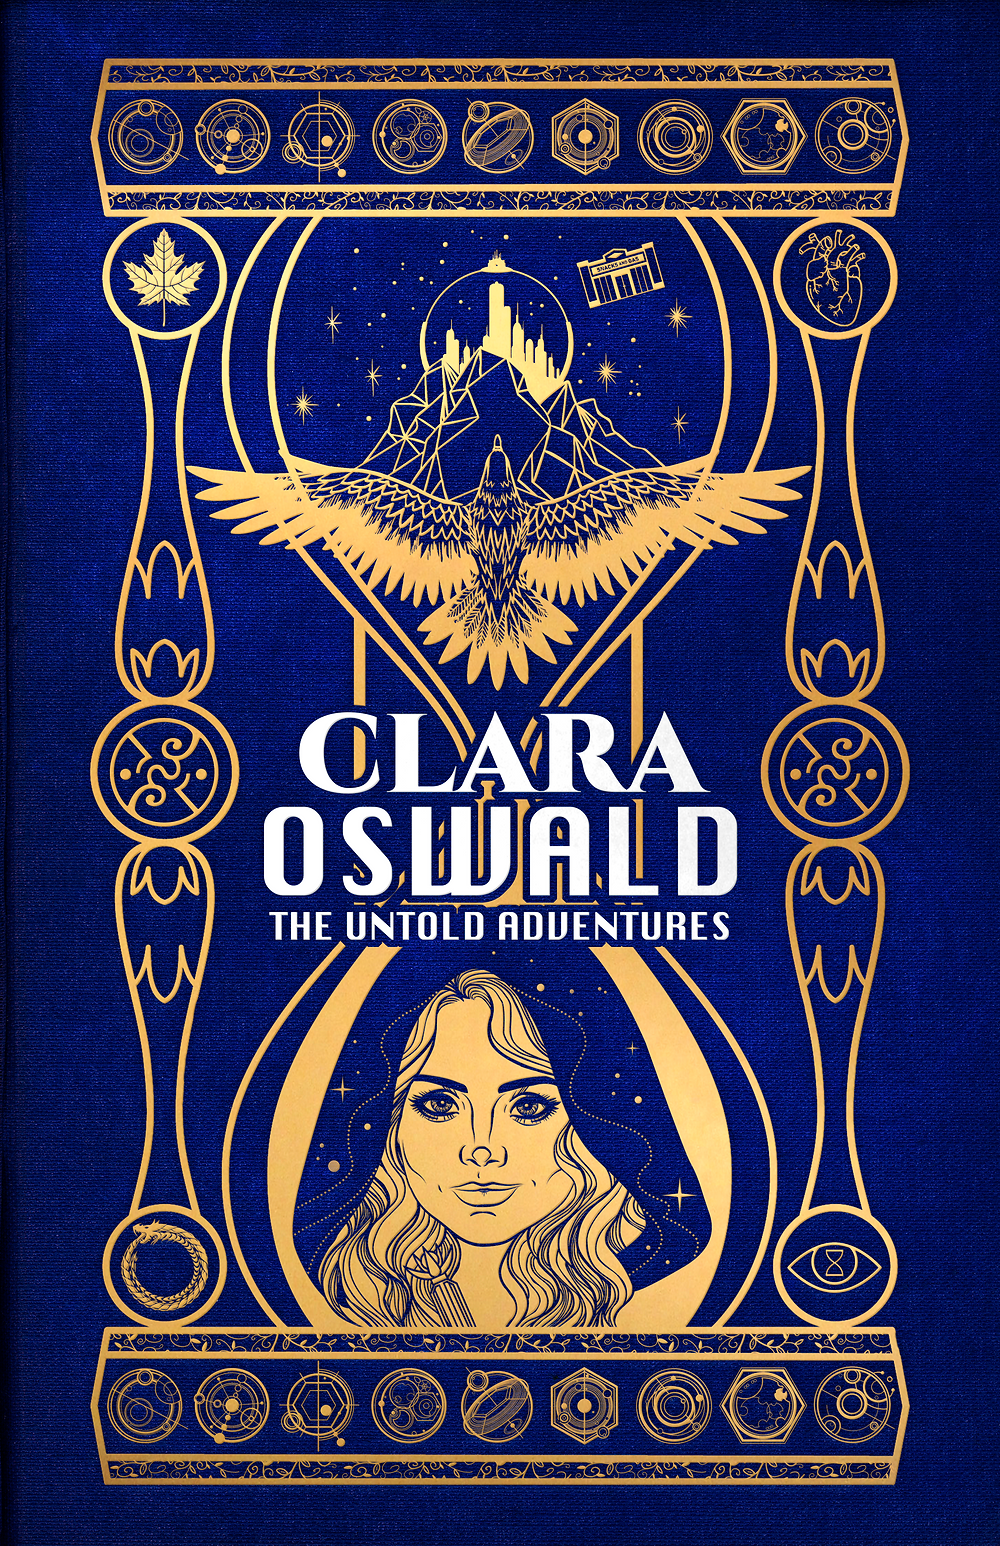 Series cover art with Clara